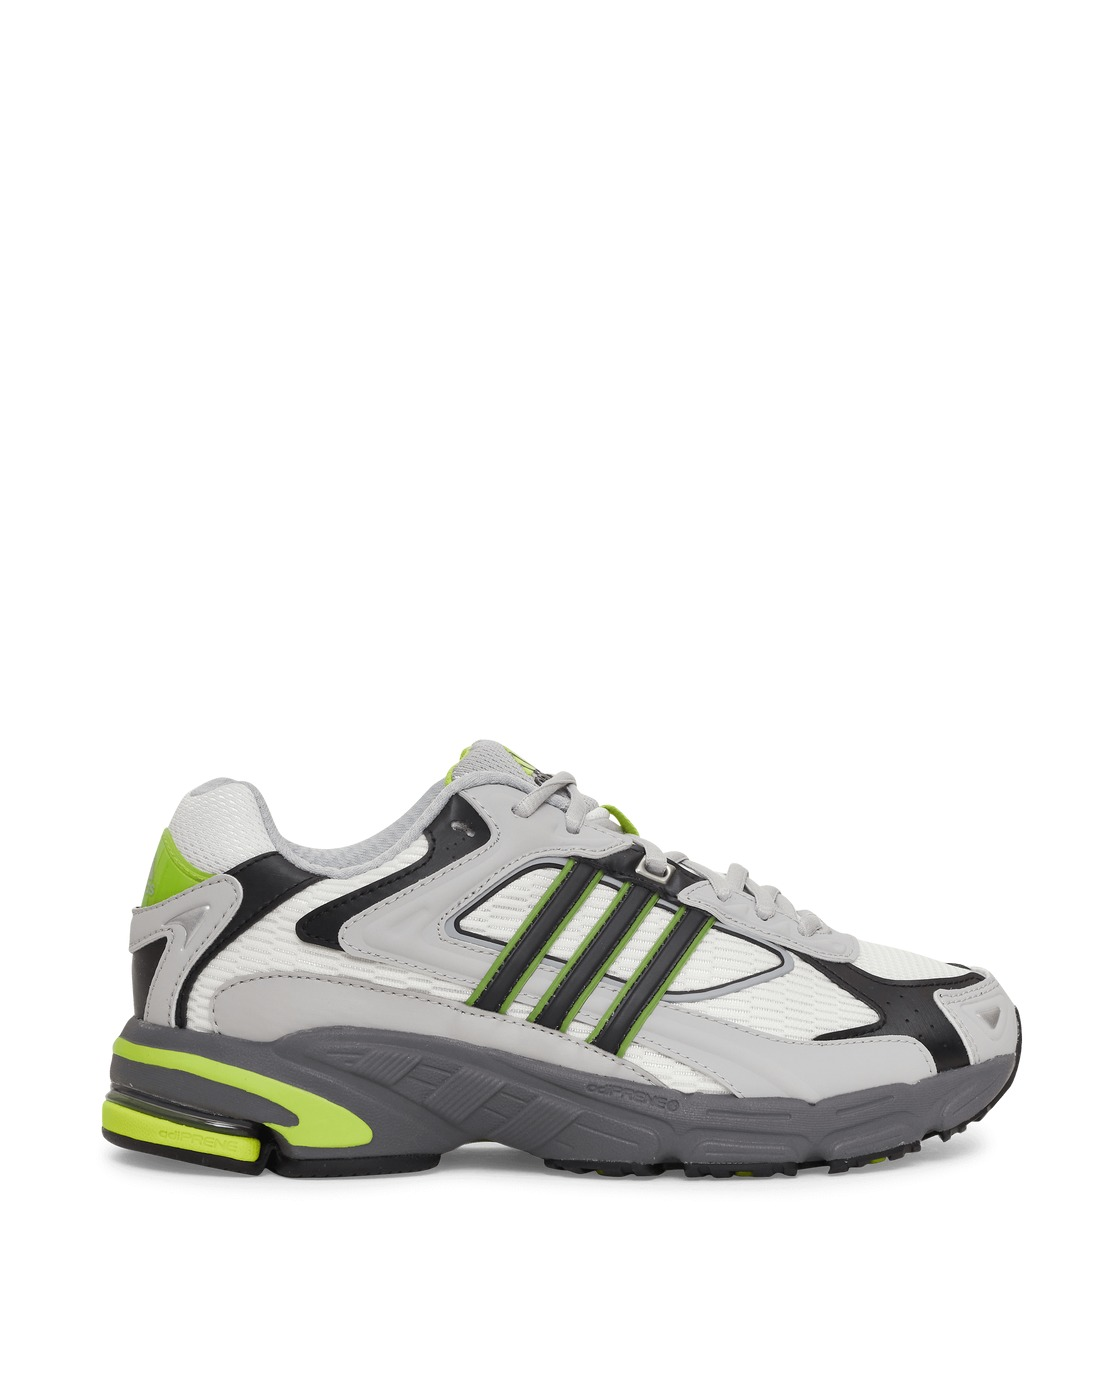 Adidas Originals Response Cl Sneakers Ftwr White/Core Black